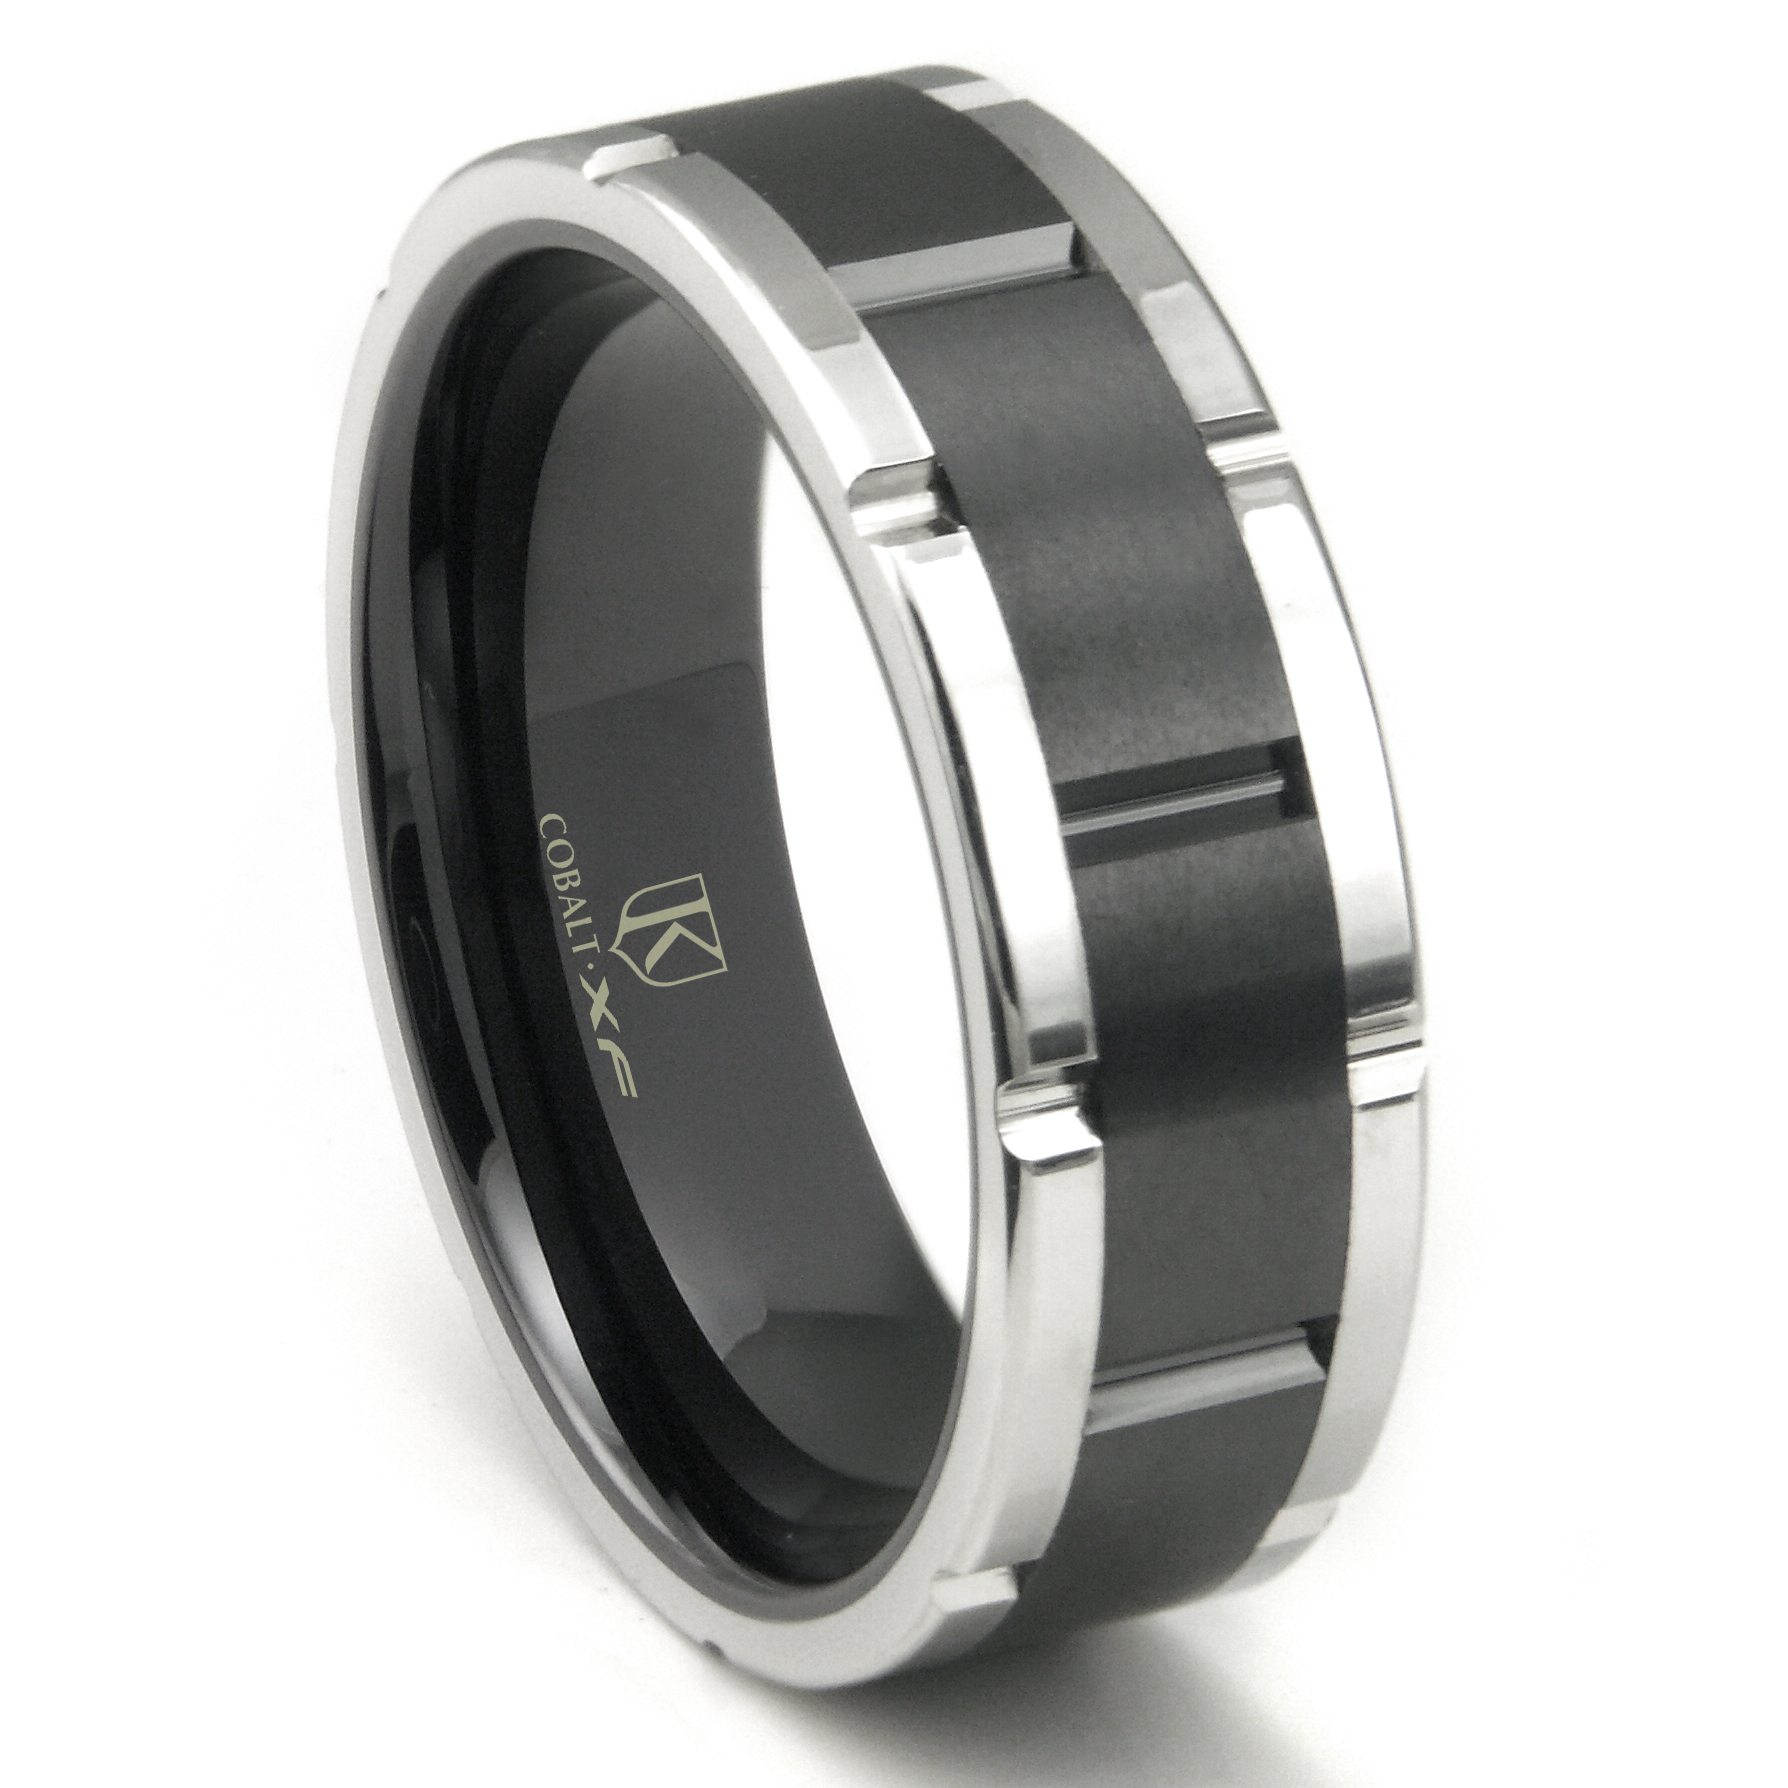 p ring finish quick rings view men in designer for hammered chrome cobalt black wedding